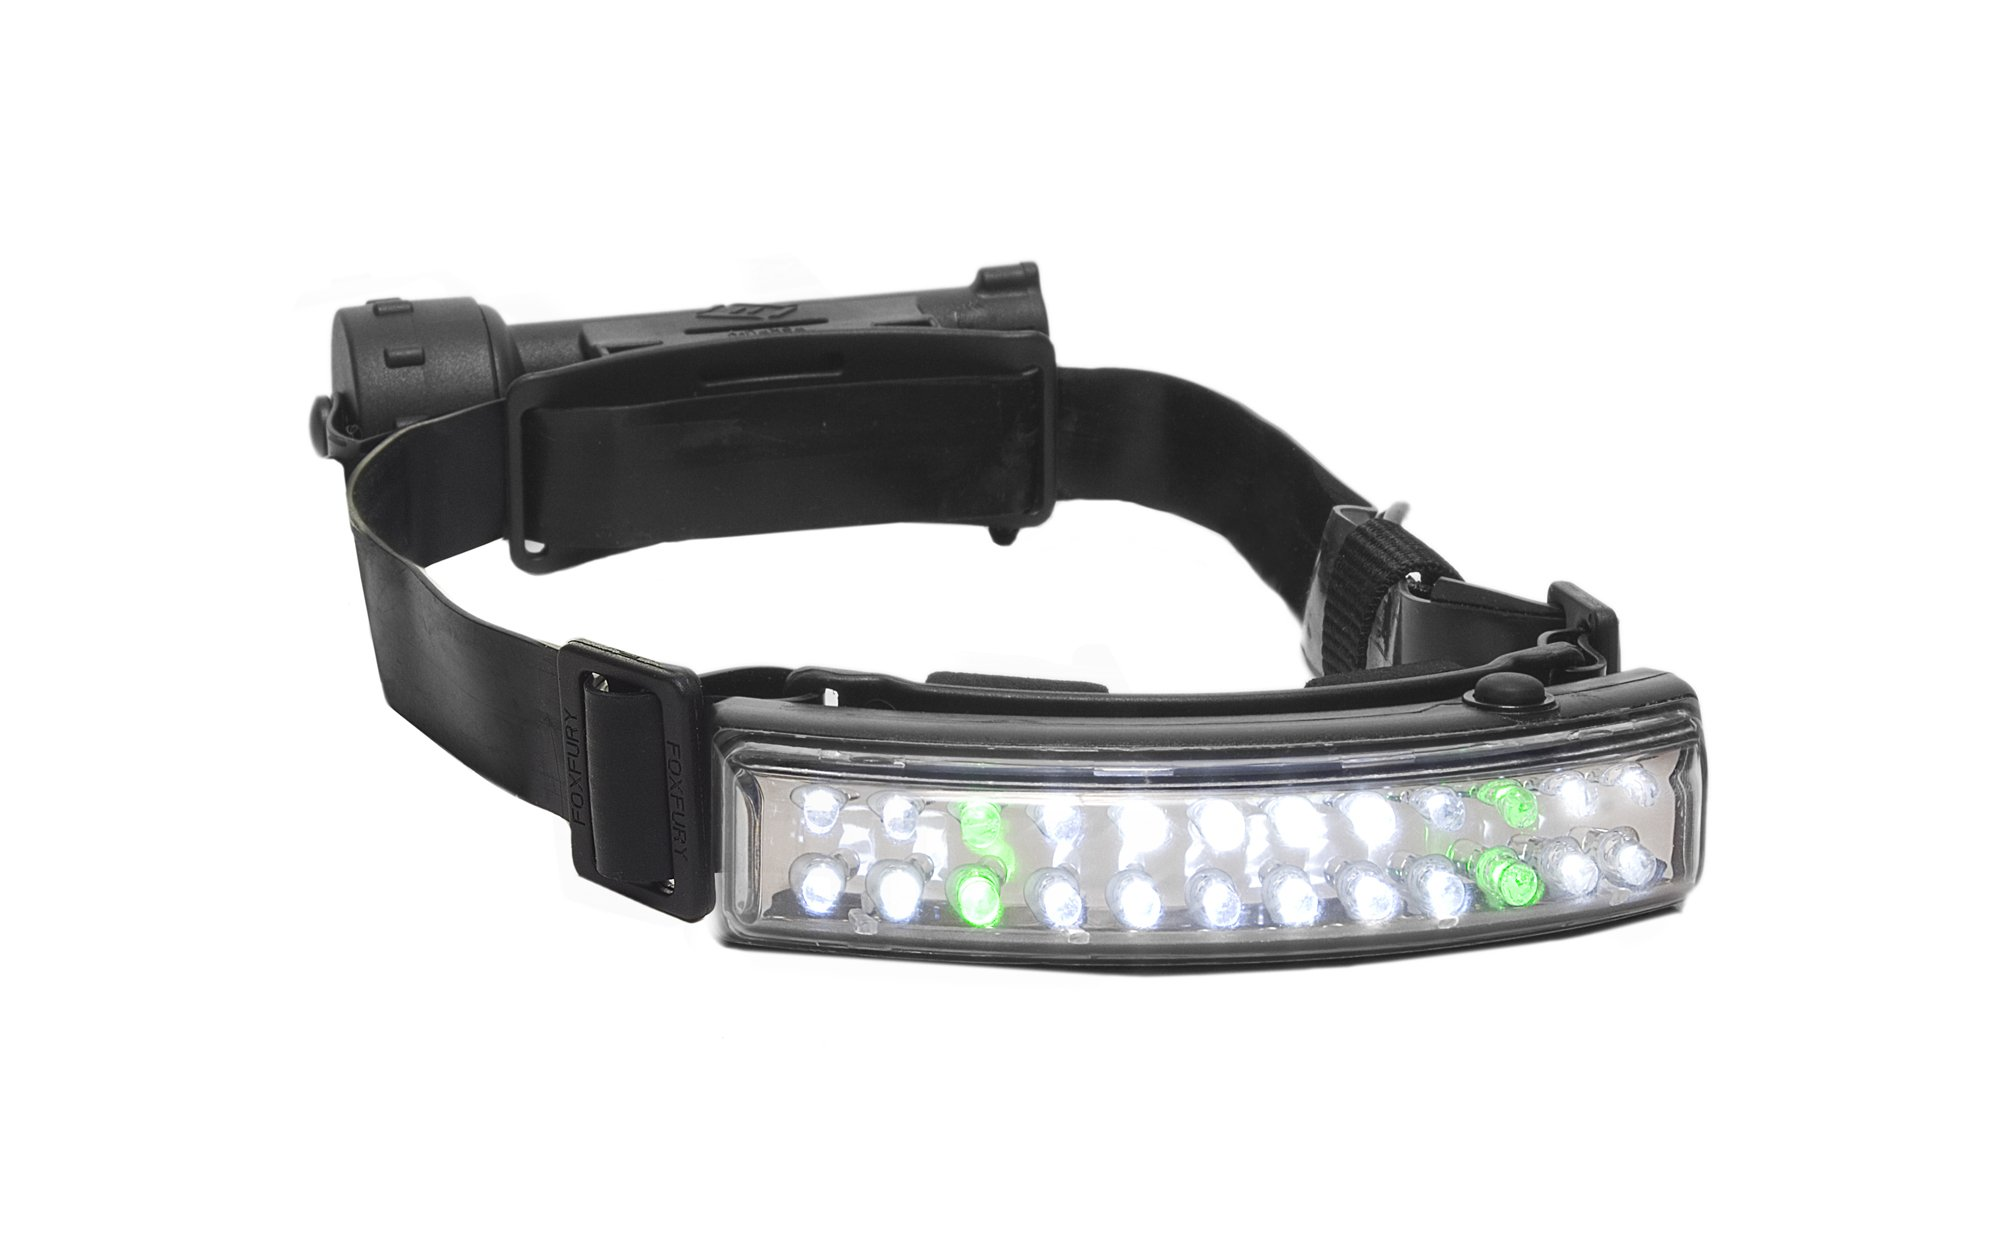 FoxFury 400-006 Performance Fire LED Helmet Light/Headlamp with Silicone Strap, 82 Lumens by FoxFury